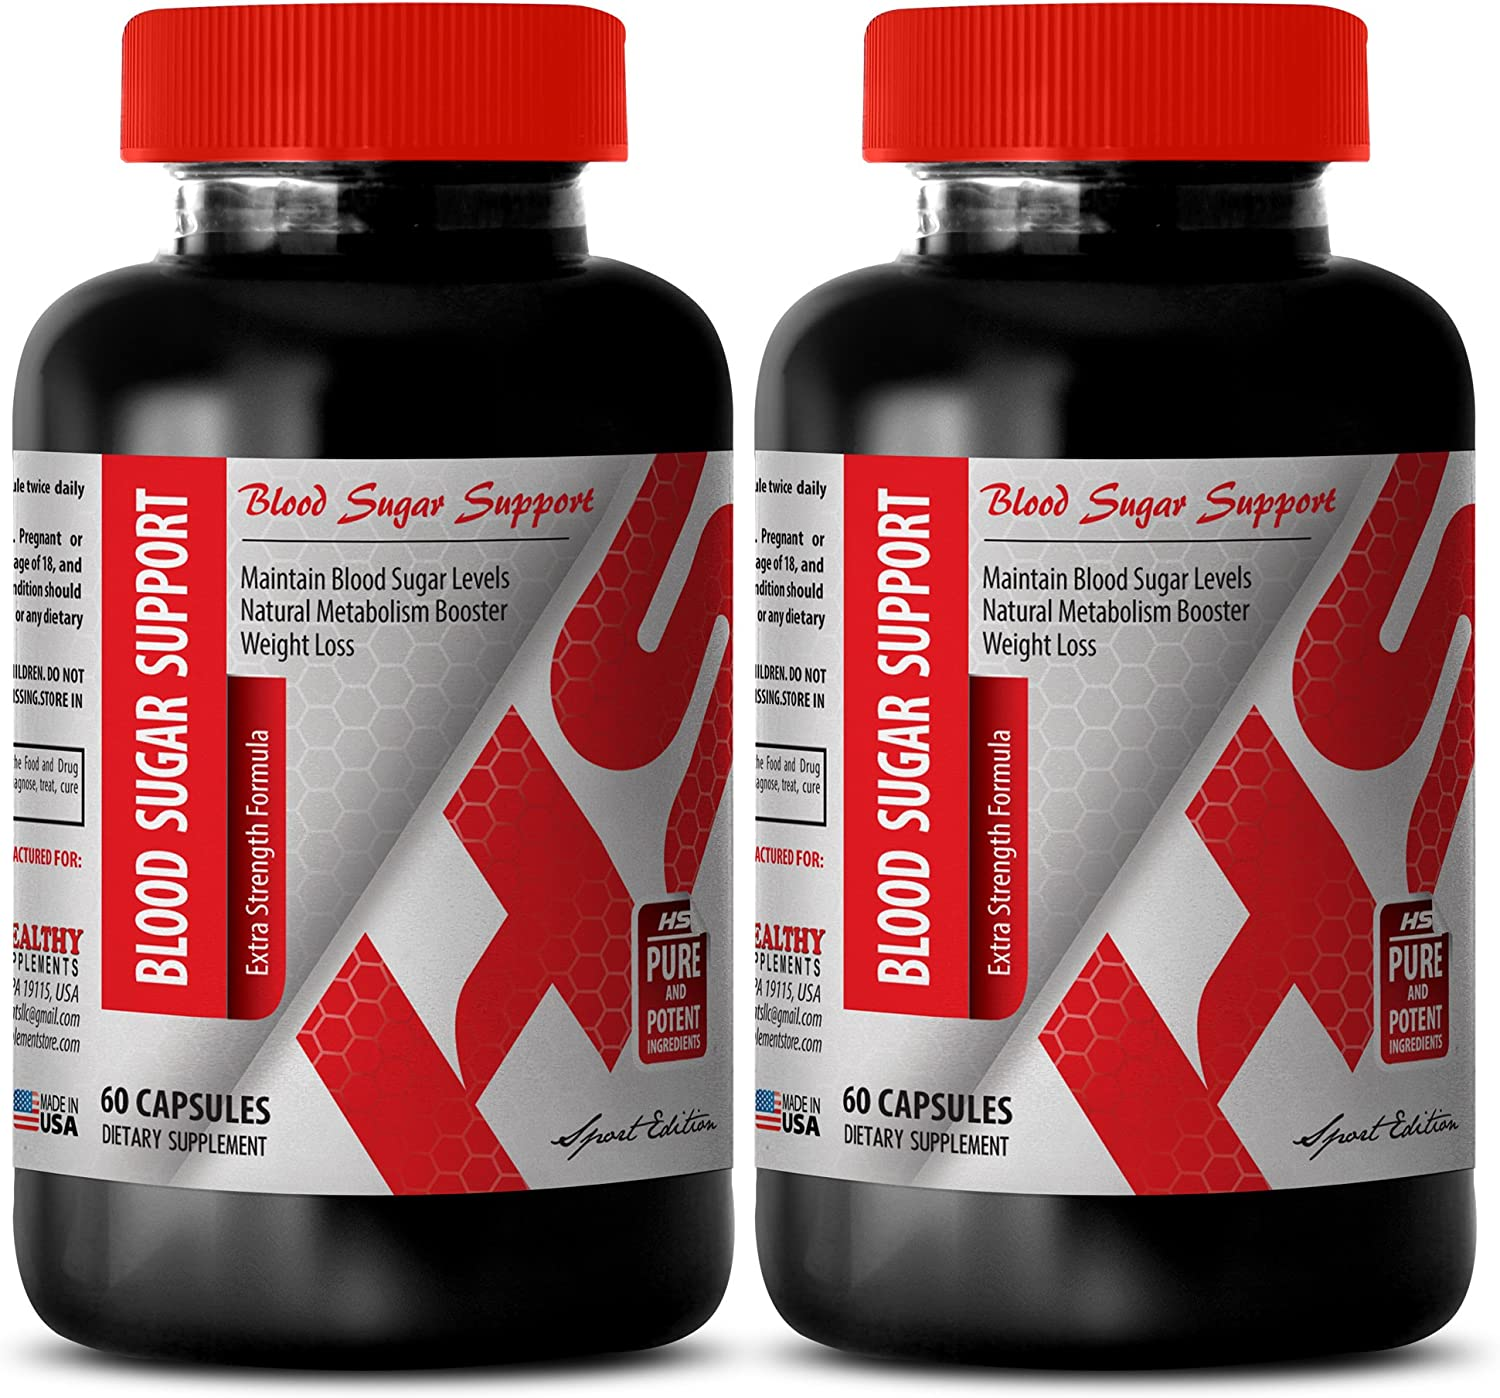 Cinnamon supreme Extract Supplement - El Paso Mall Sugar Blood Bloo Support